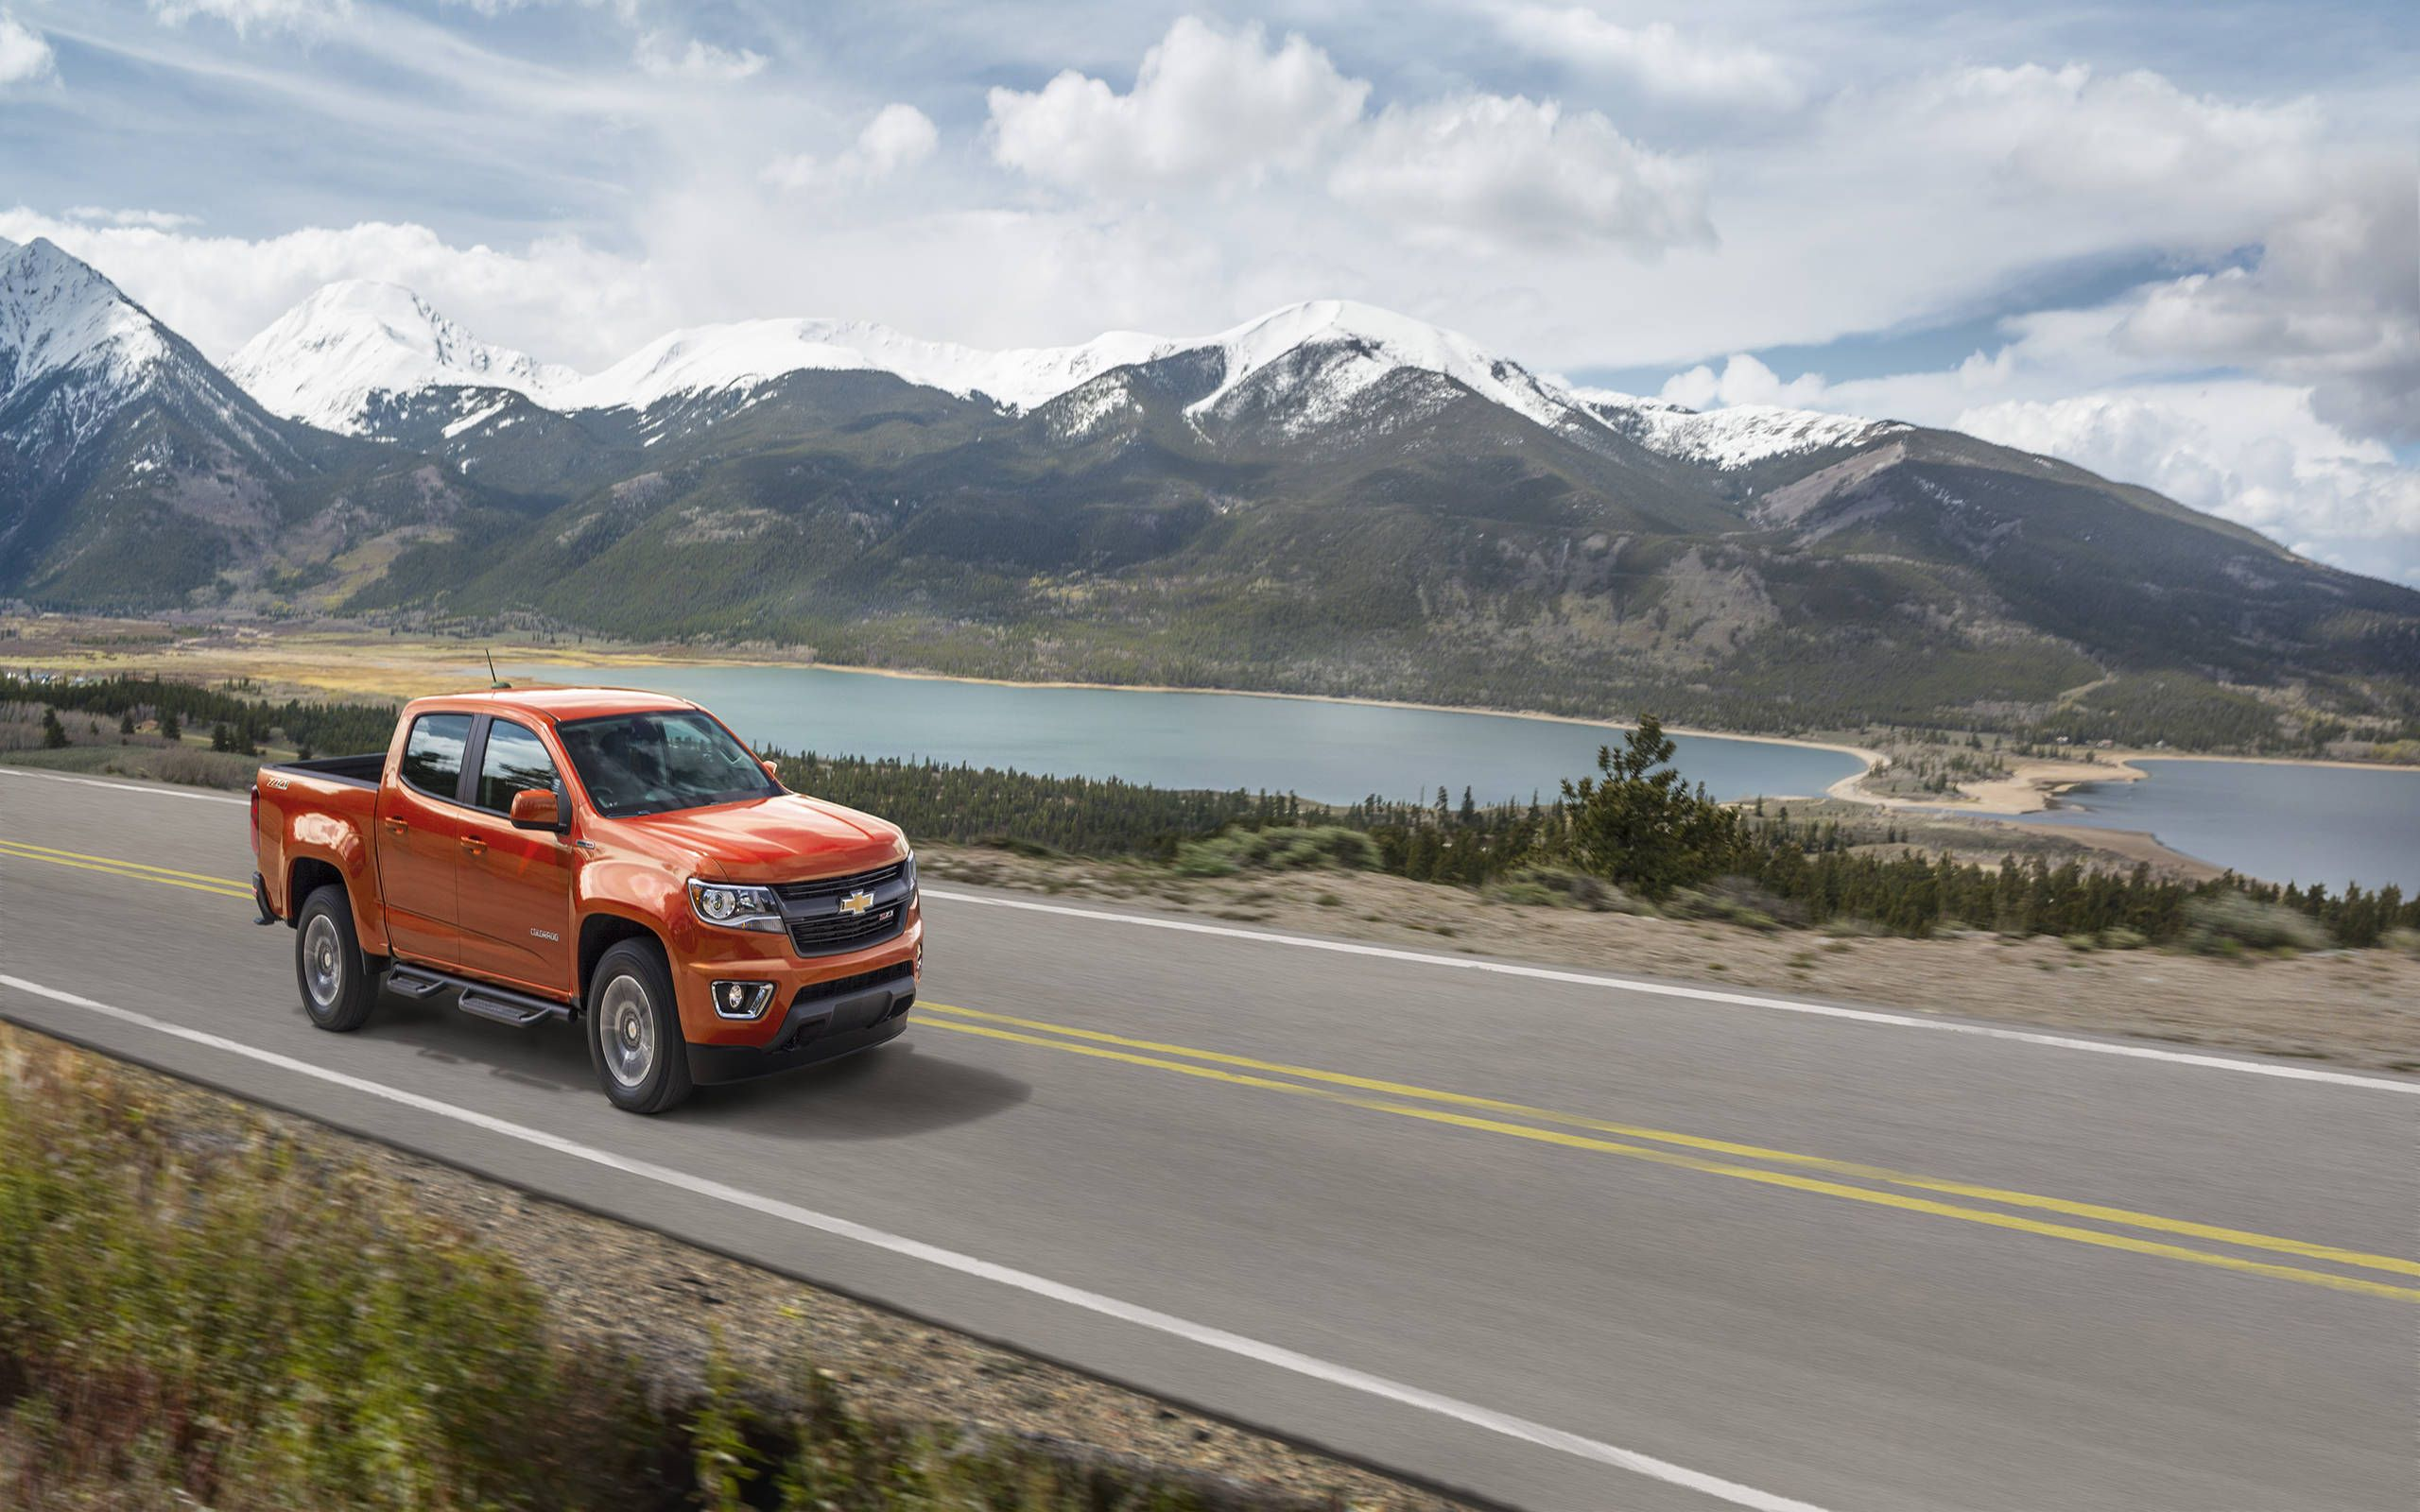 2016 Chevrolet Colorado Diesel Review Love The Engine But Smaller Size Forces Compromises